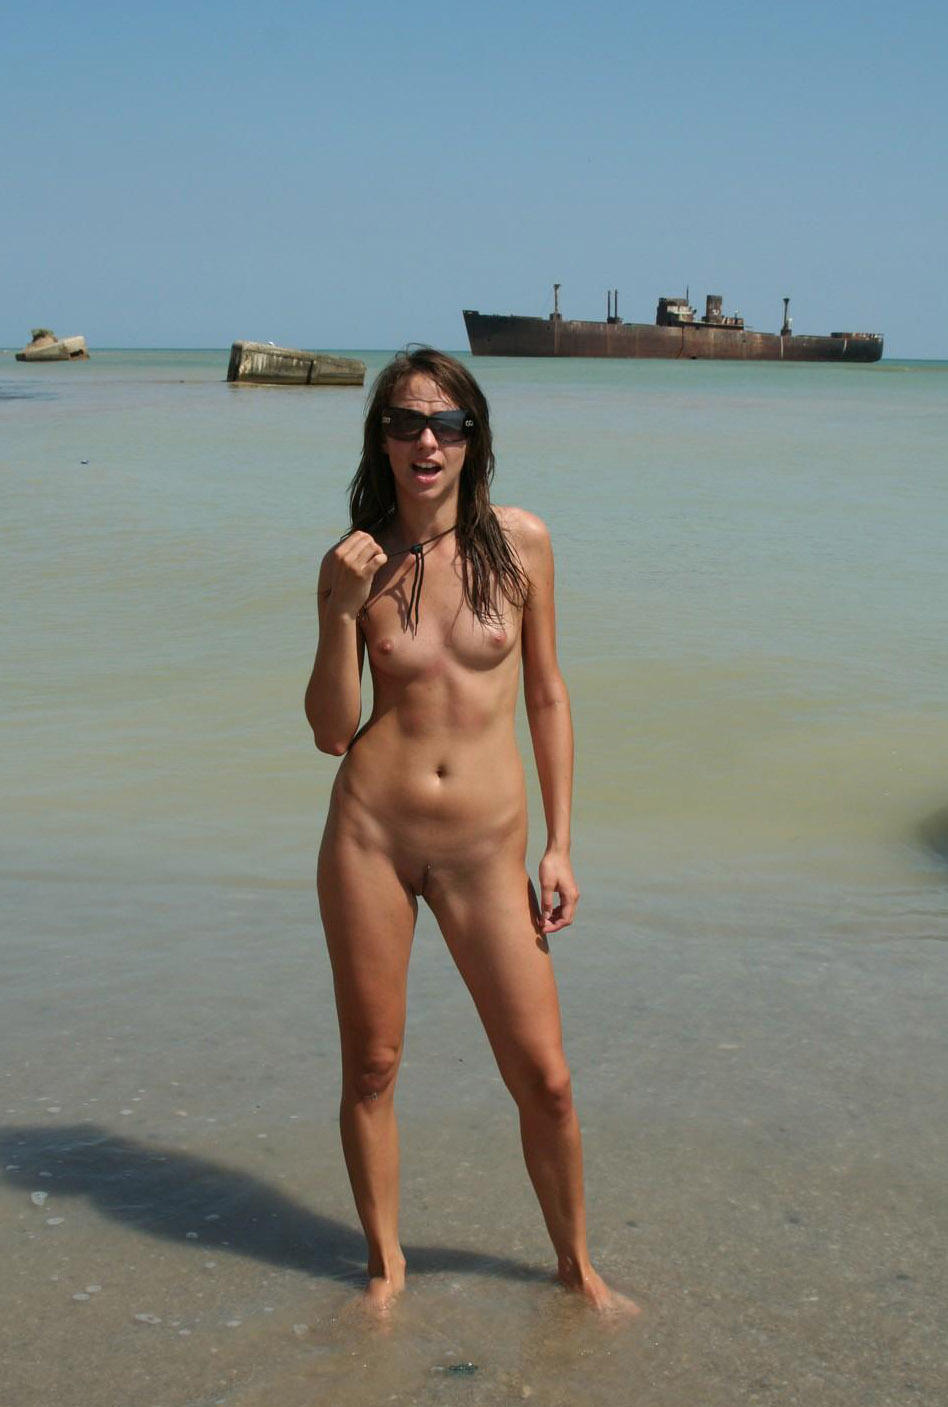 Chick with sunglasses standing in the water